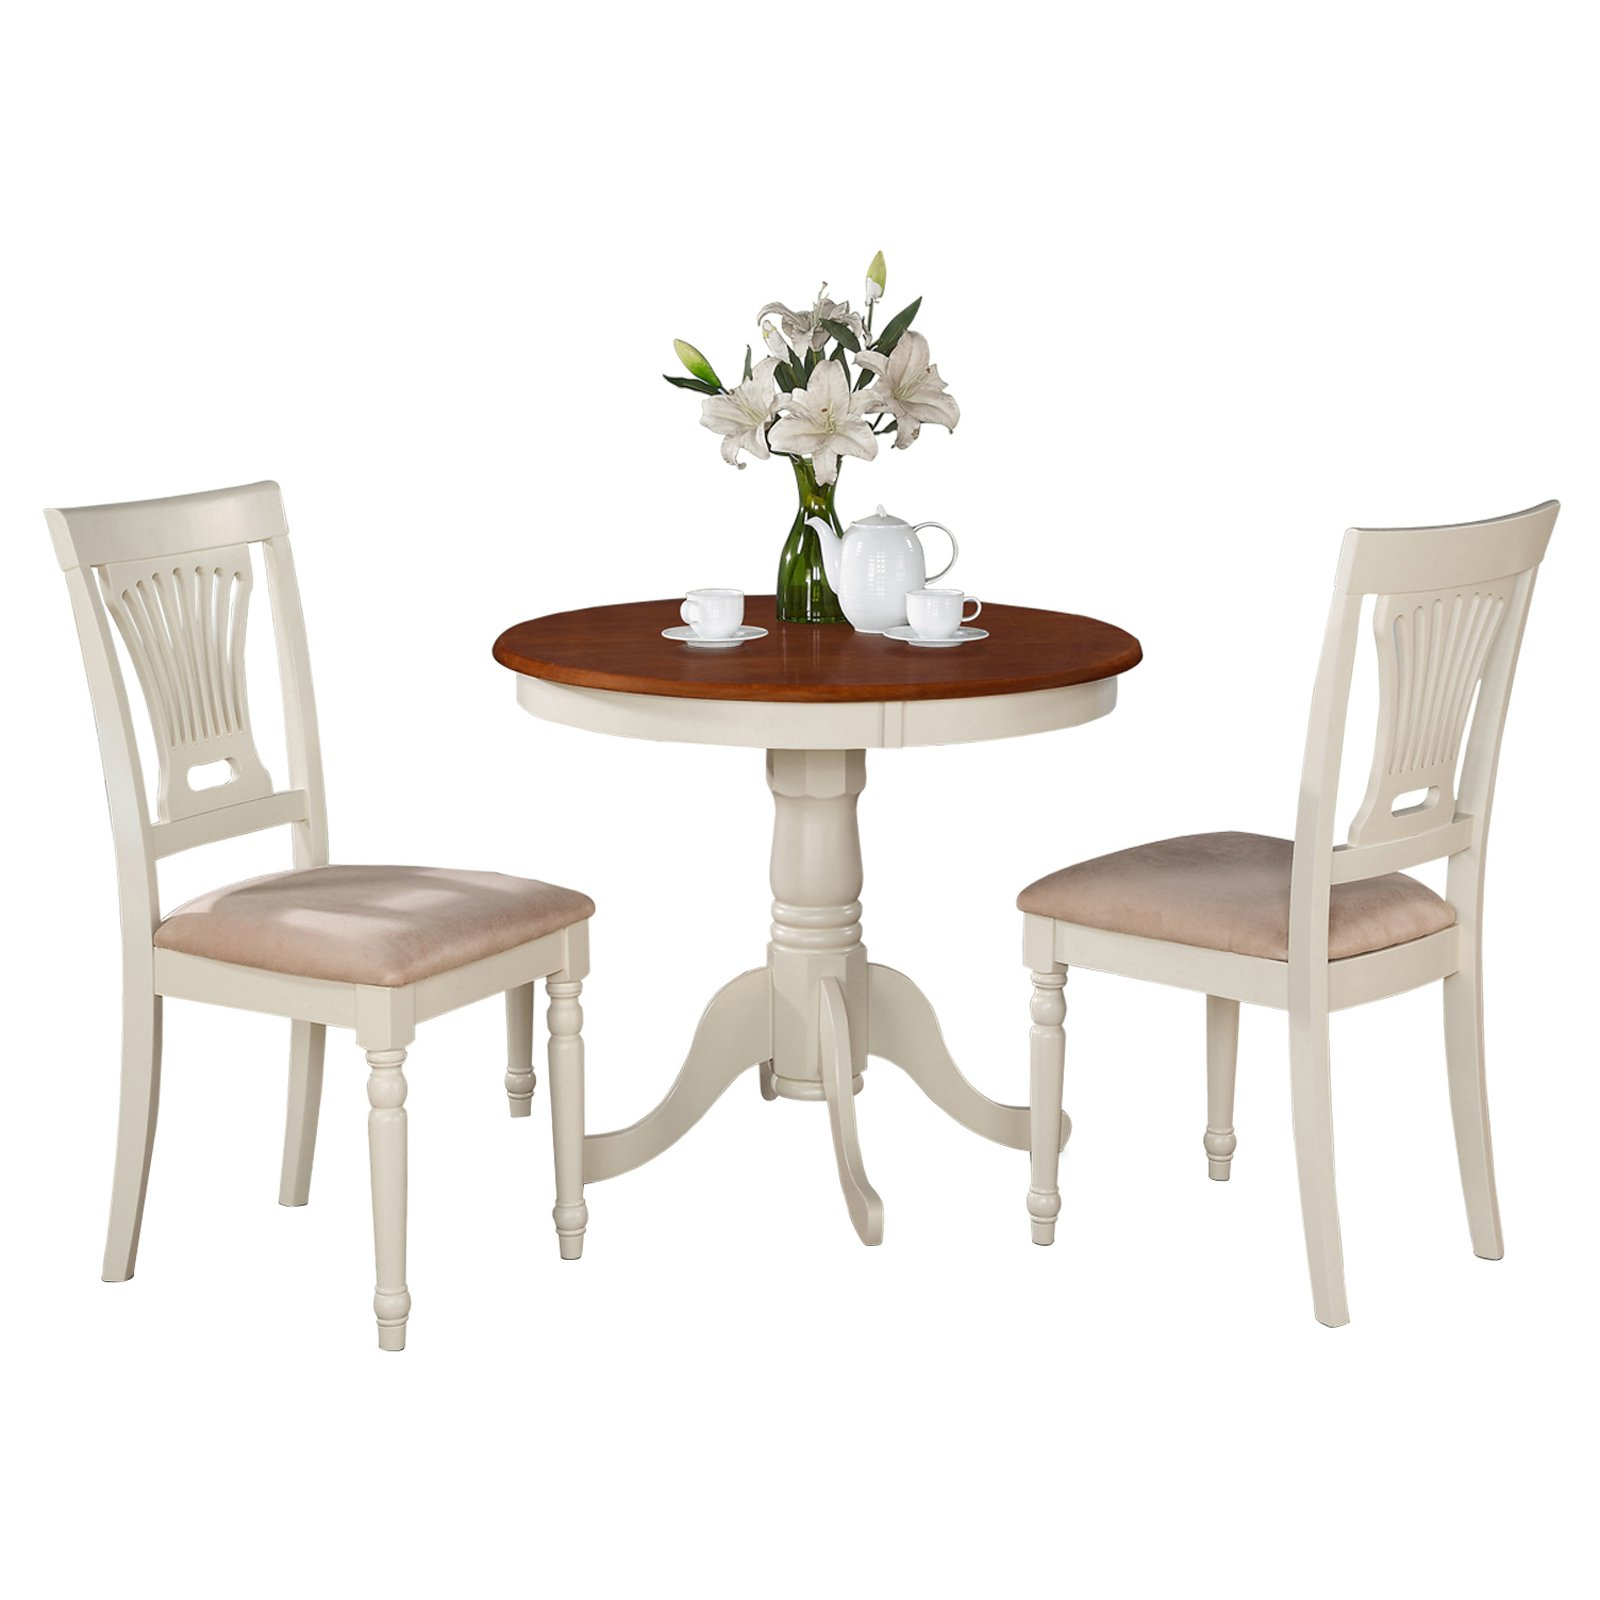 East West Furniture Antique 3 Piece Pedestal Round Dining Table Set with Plainville Microfiber Seat Chairs